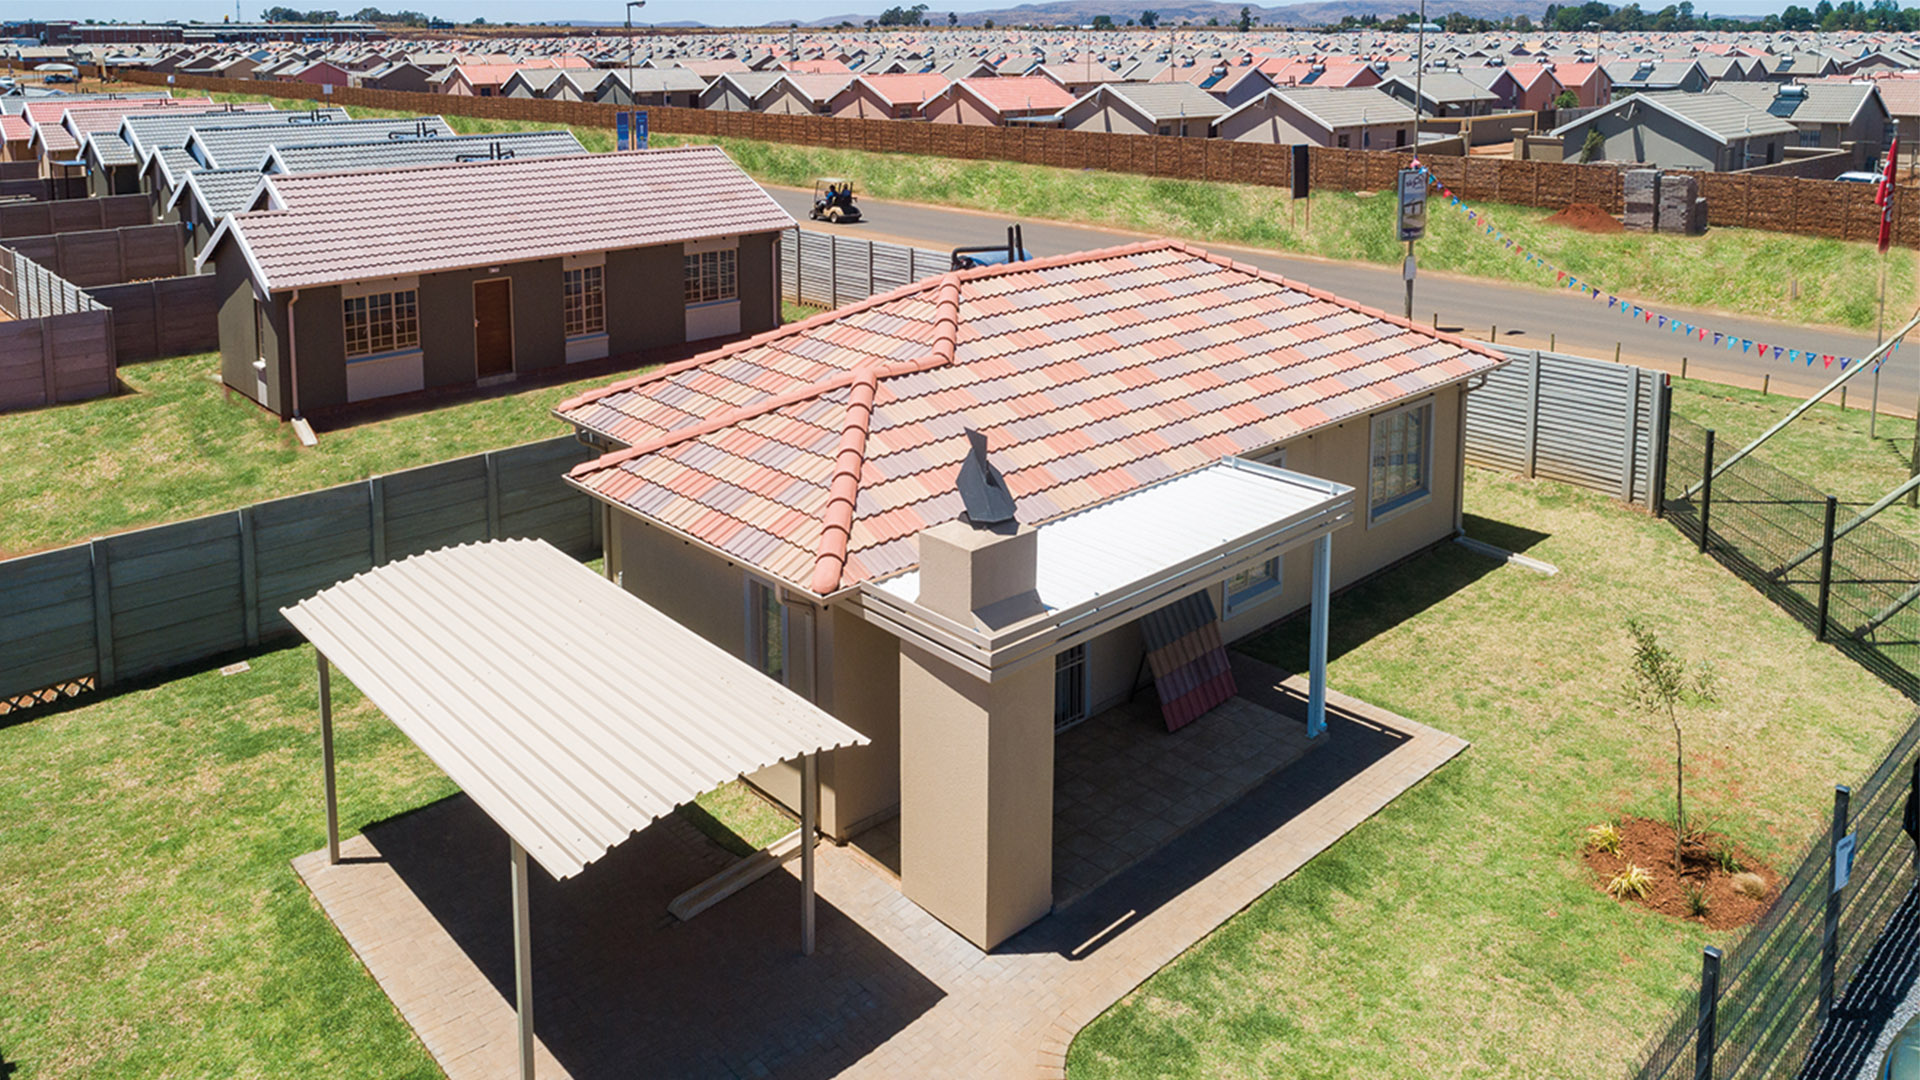 Housing development: The Sky is the limit